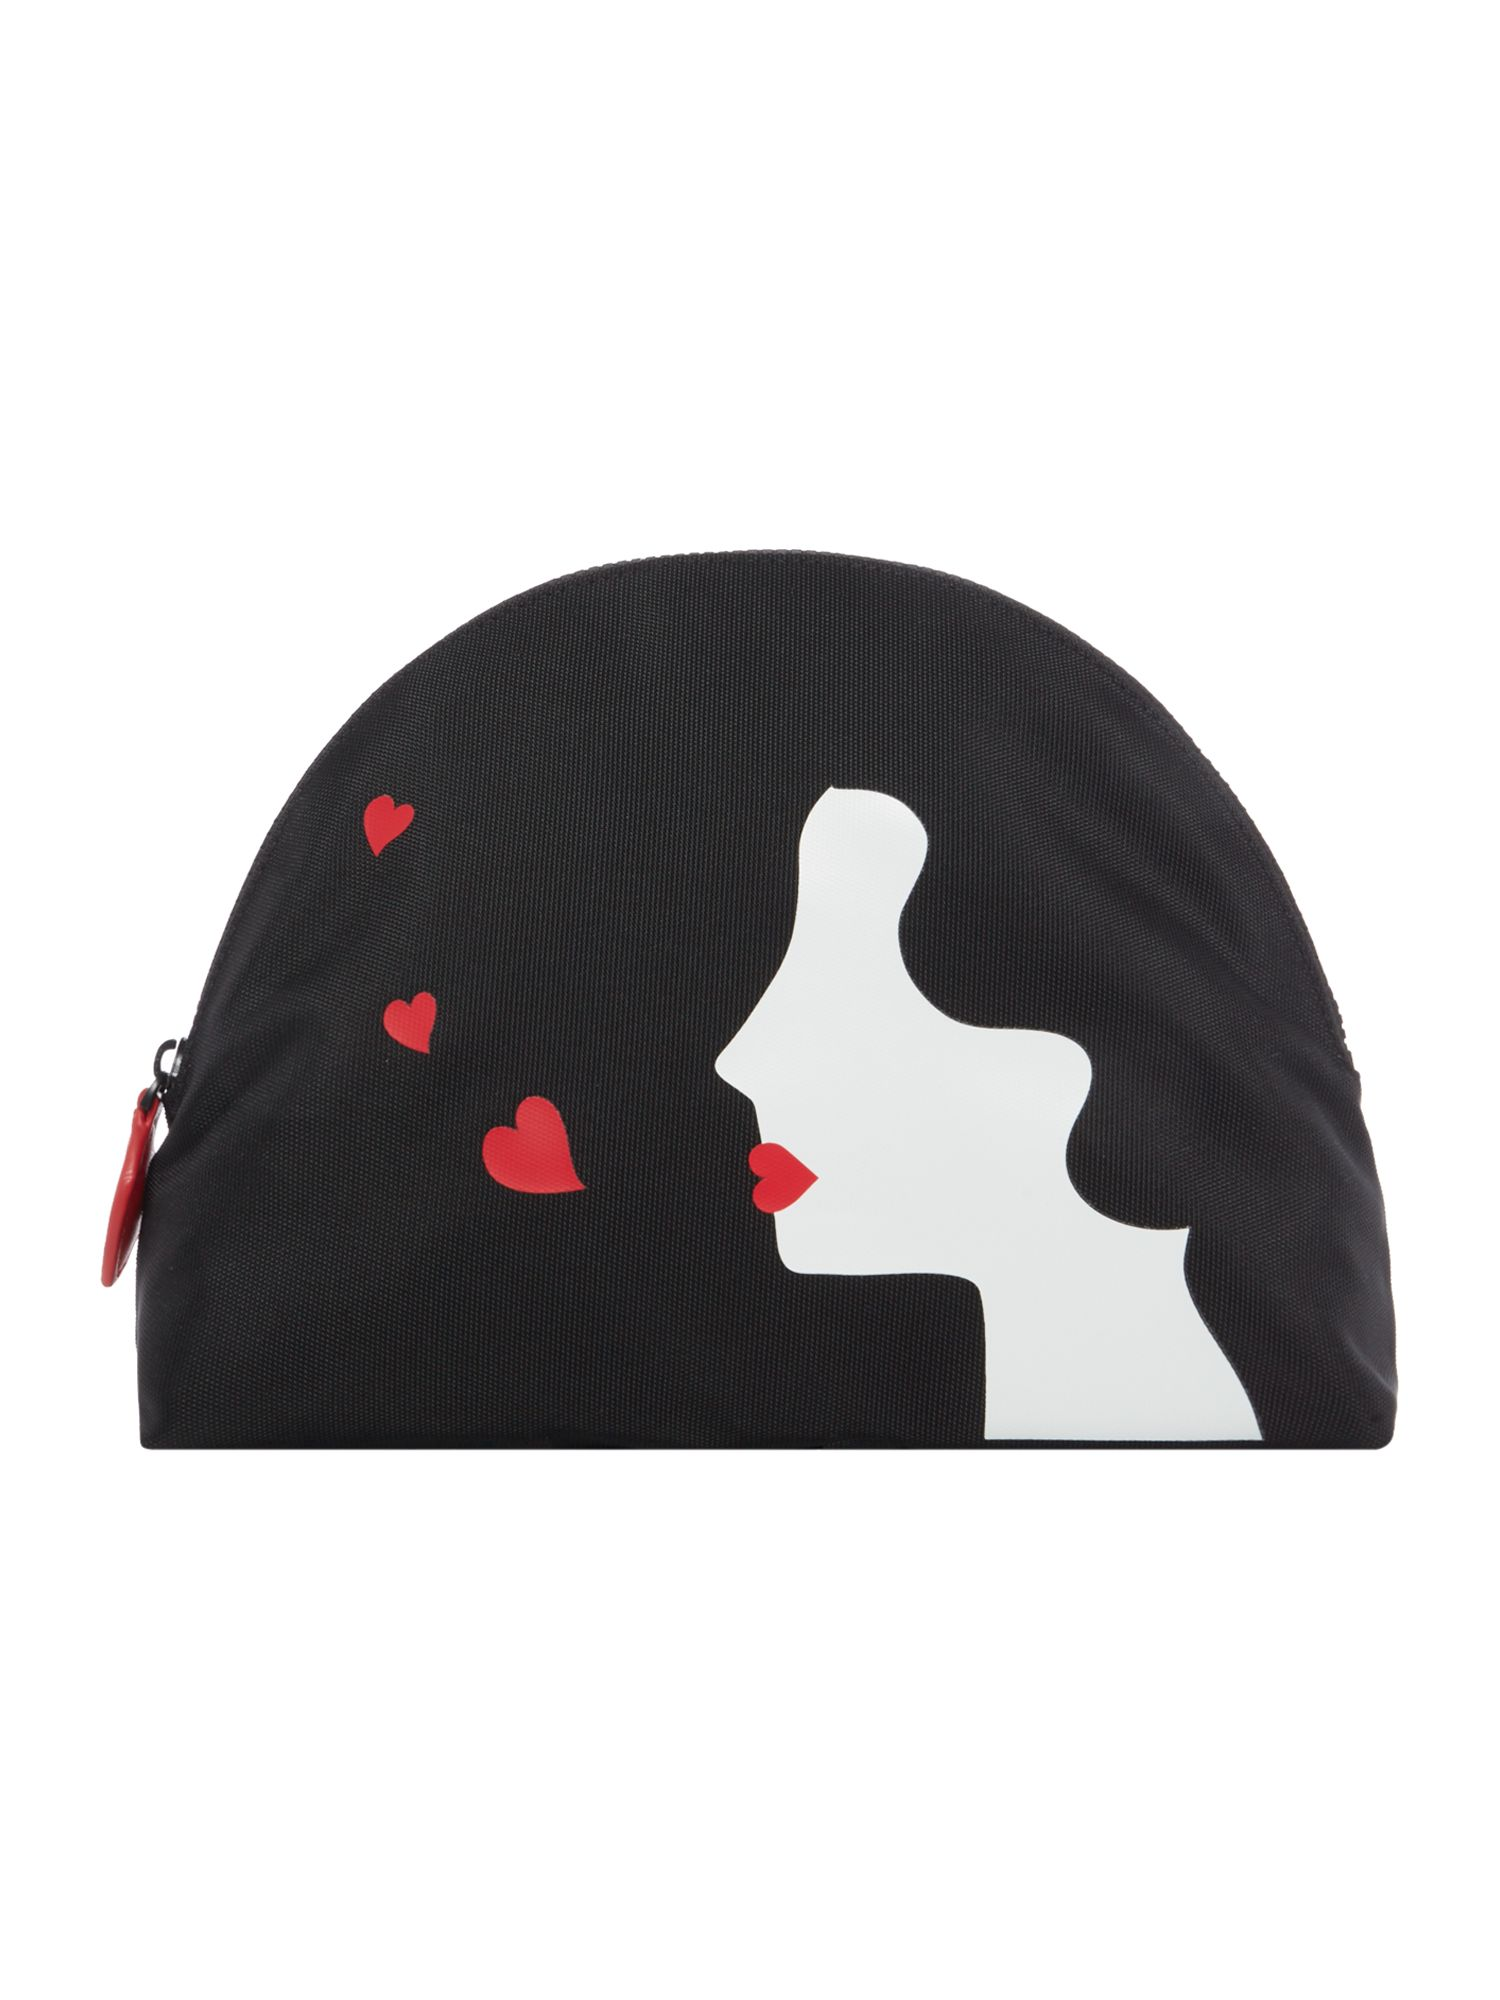 Lulu Guinness Kissing cameo large crescent pouch, Black